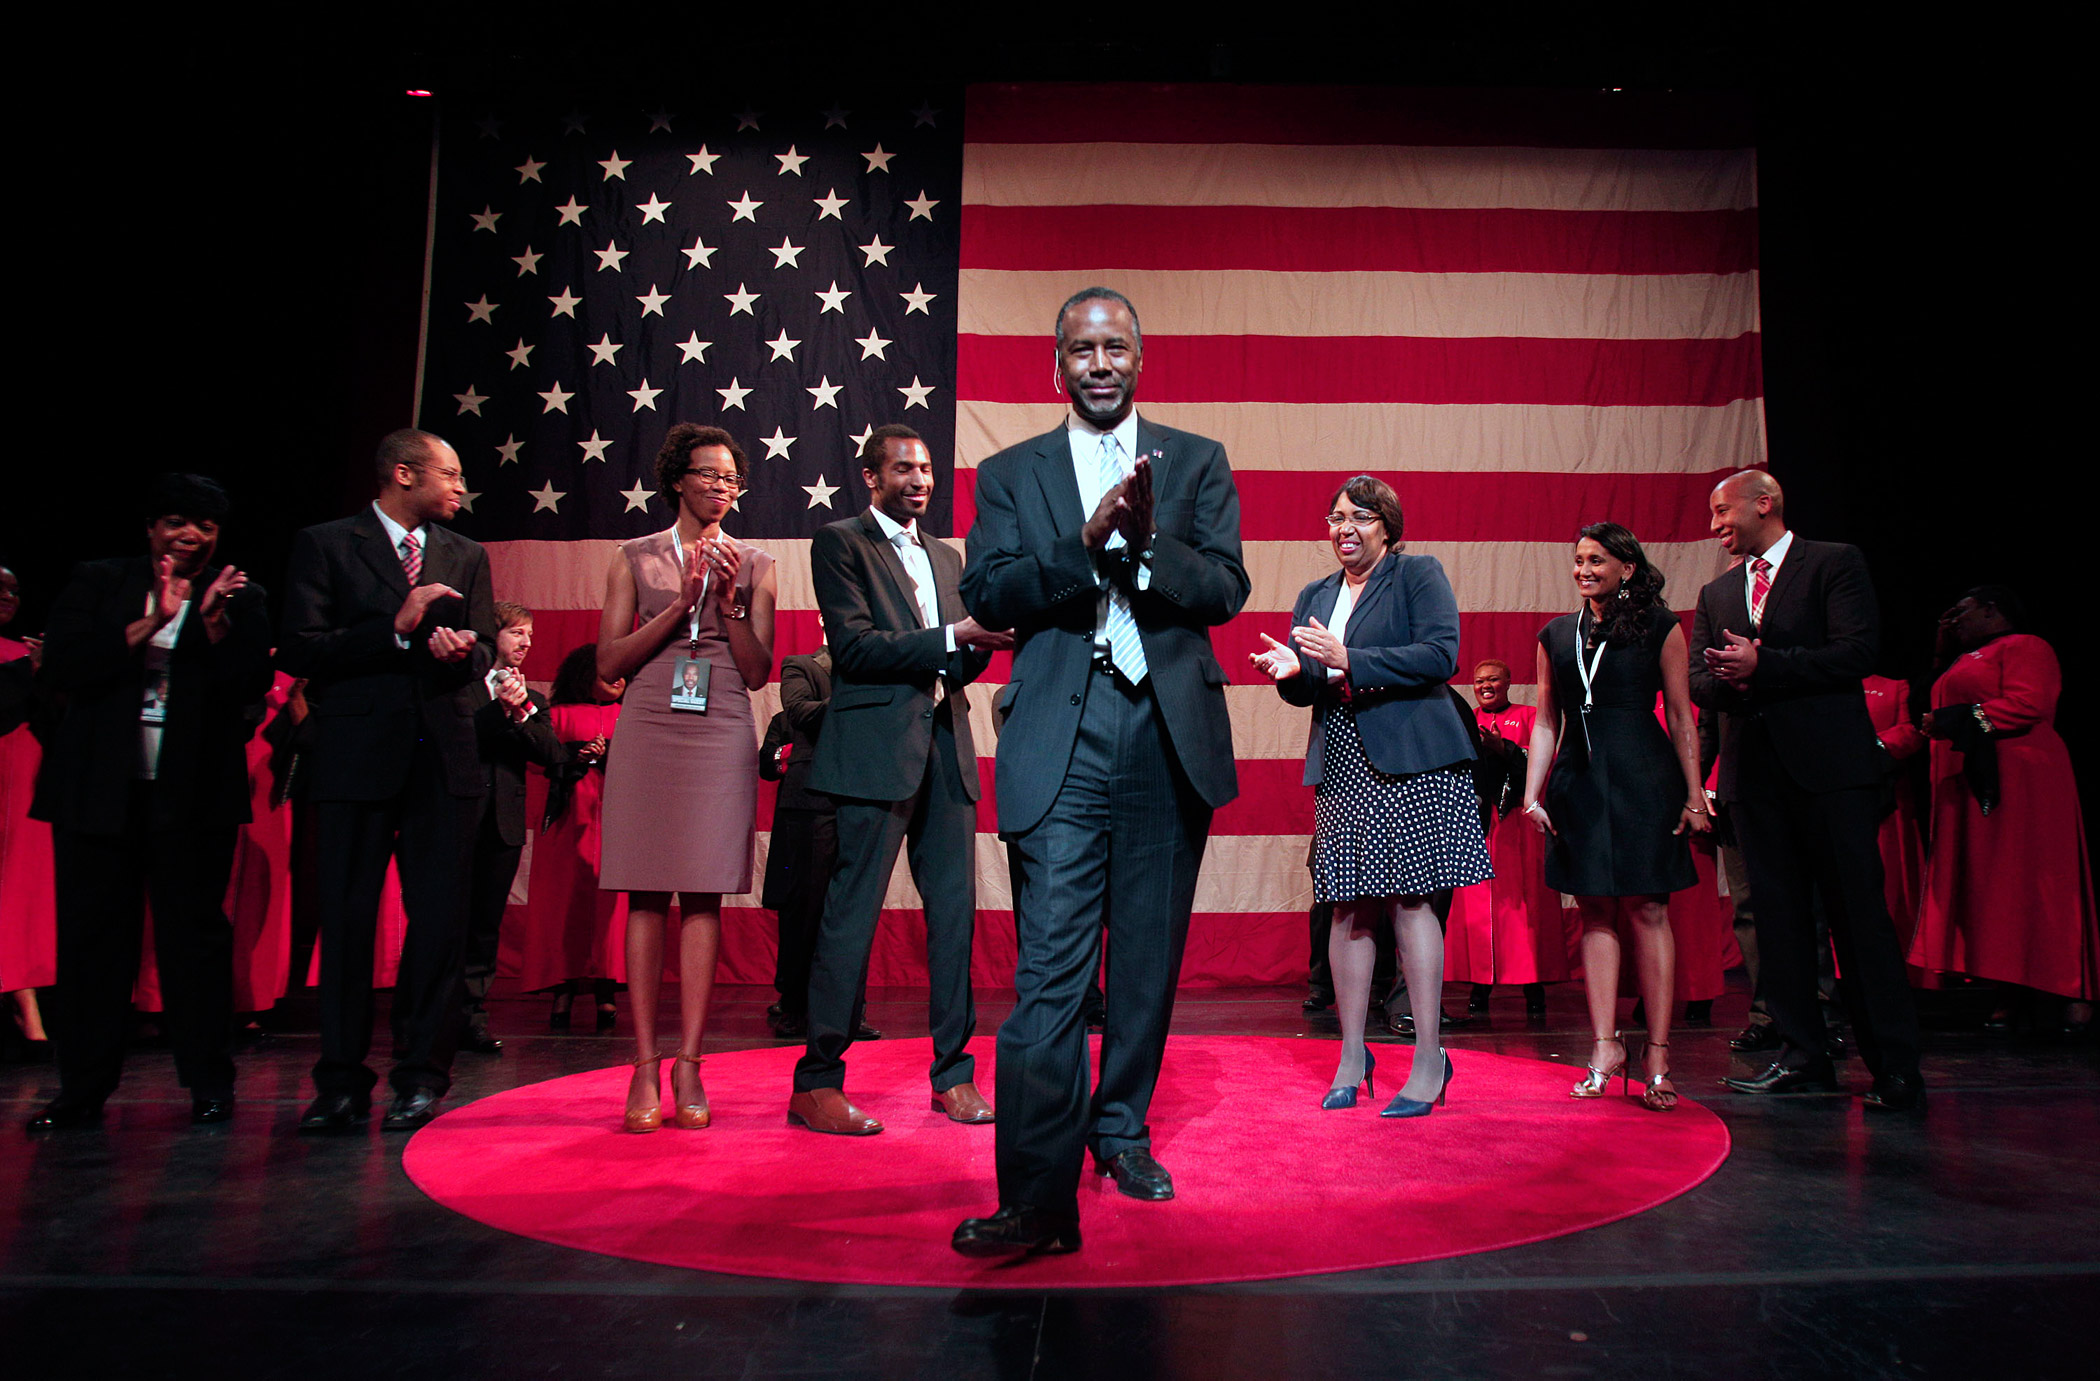 Ben Carson officially announces his candidacy for President of the United States on May 4, 2015 in Detroit.